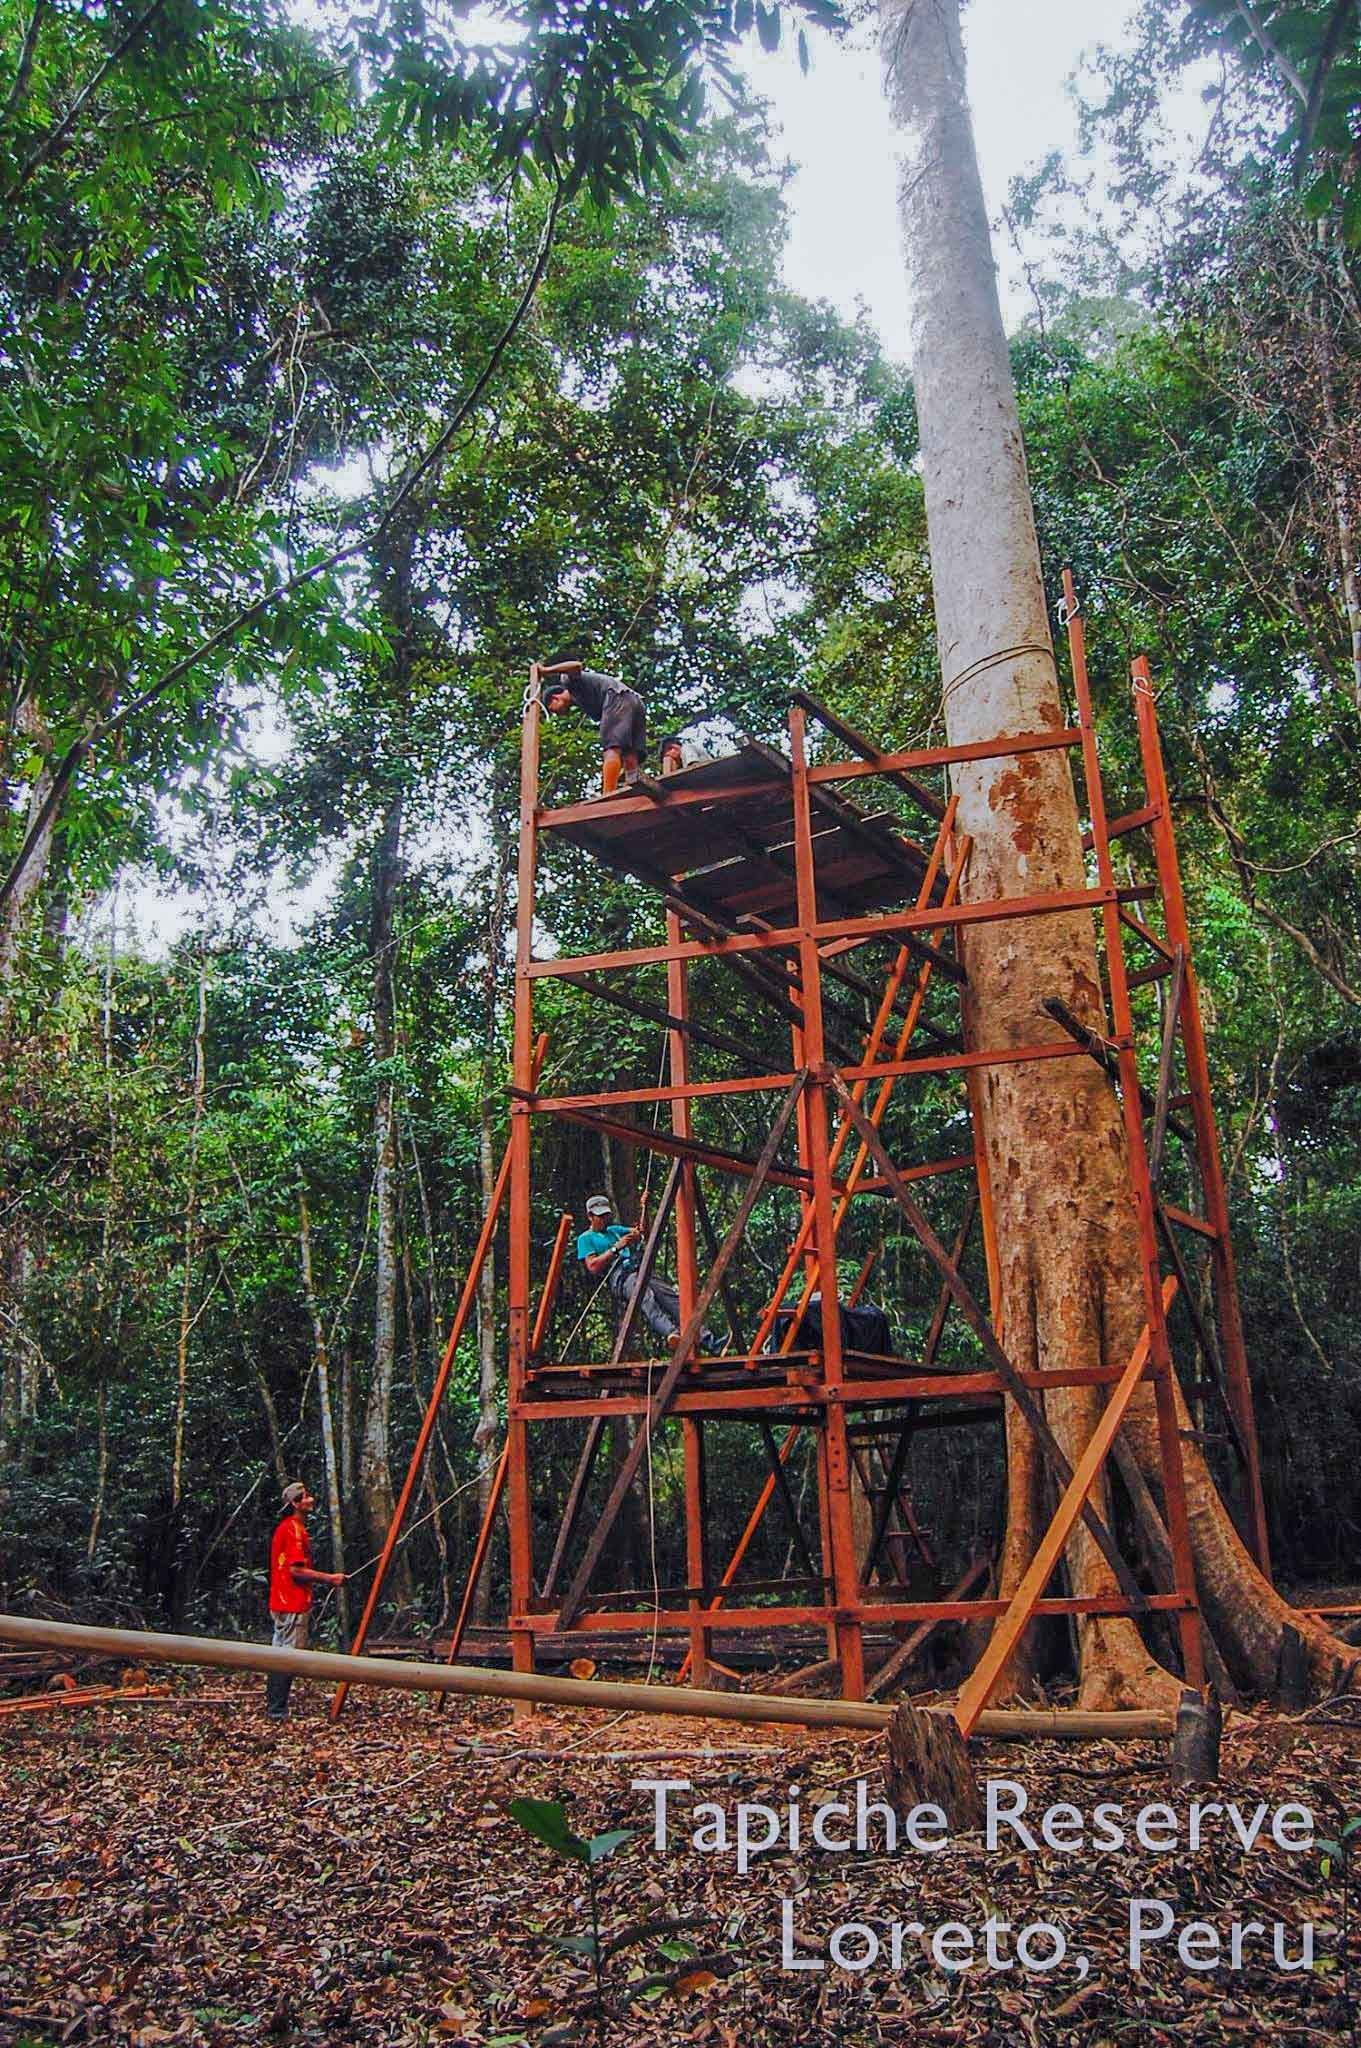 Tapiche-Amazon-Jungle-Tour-Peru-canopy-observation-tower-4.jpg